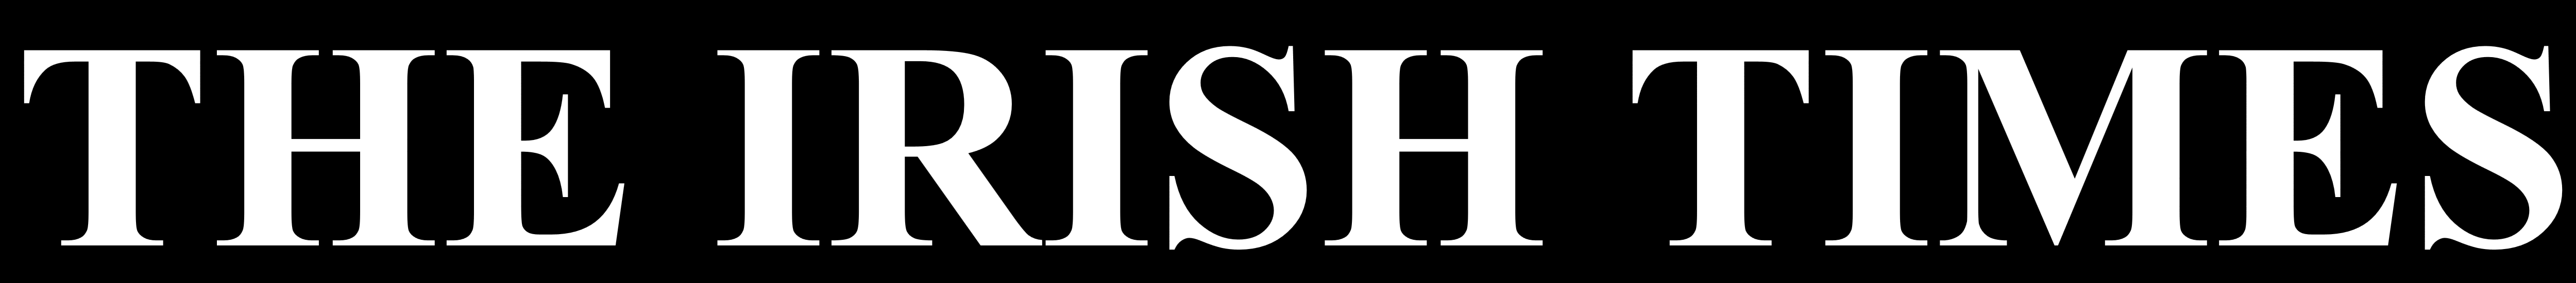 The_Irish_Times_logo_black